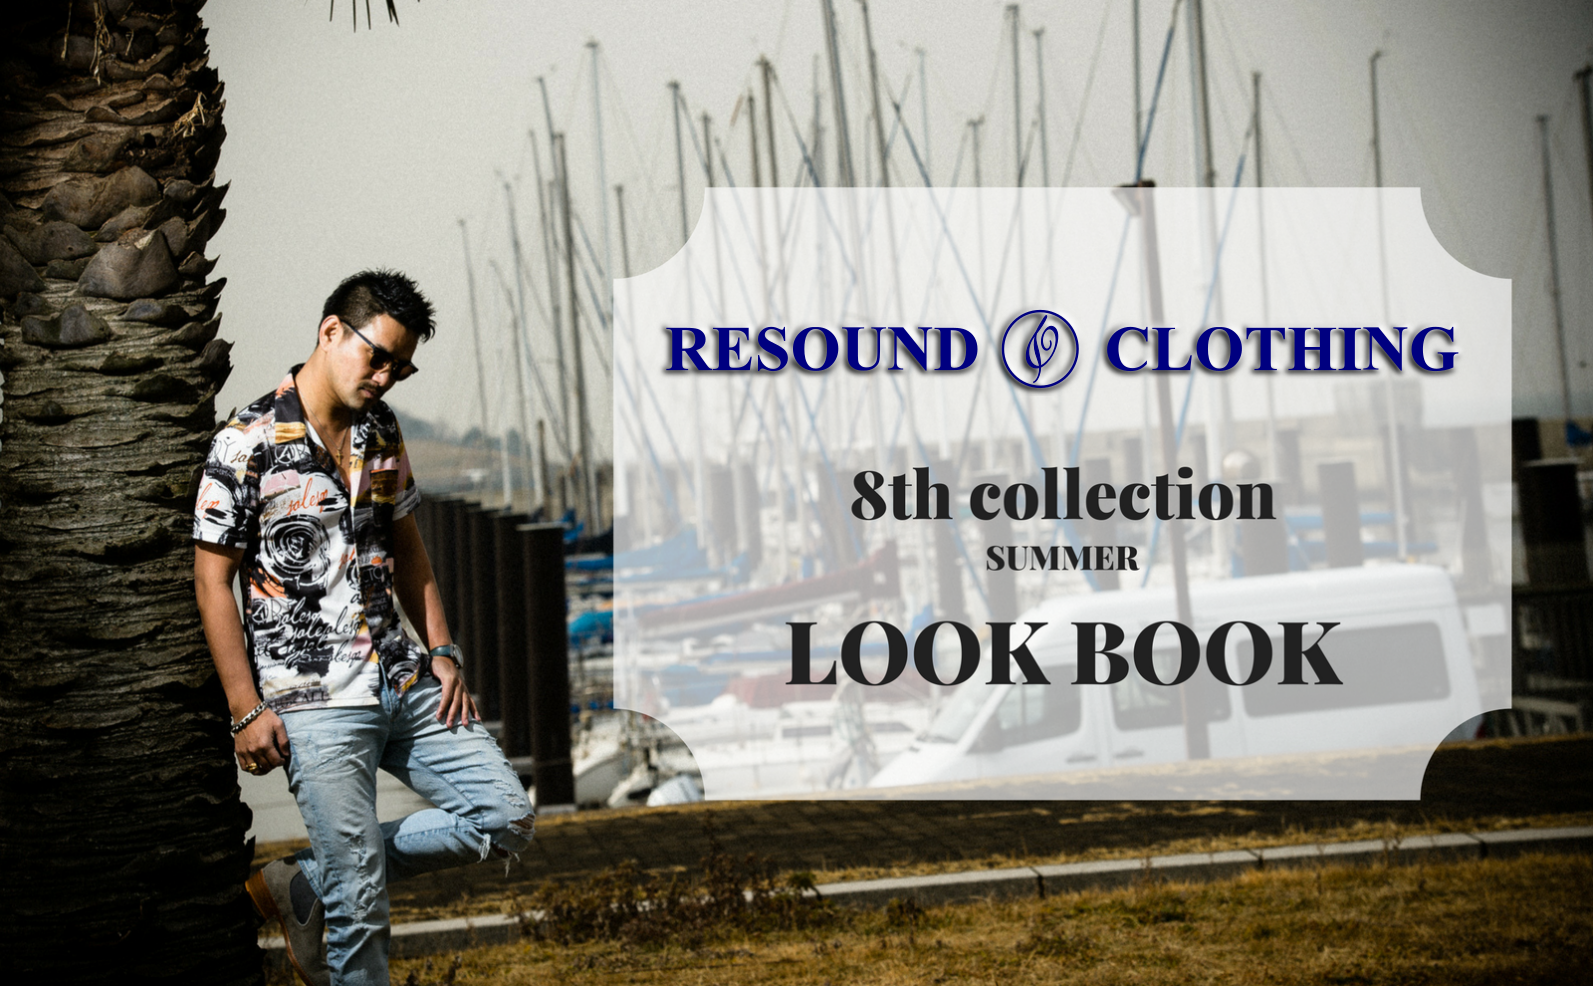 8TH COLLECTION SUMMER LOOKBOOK